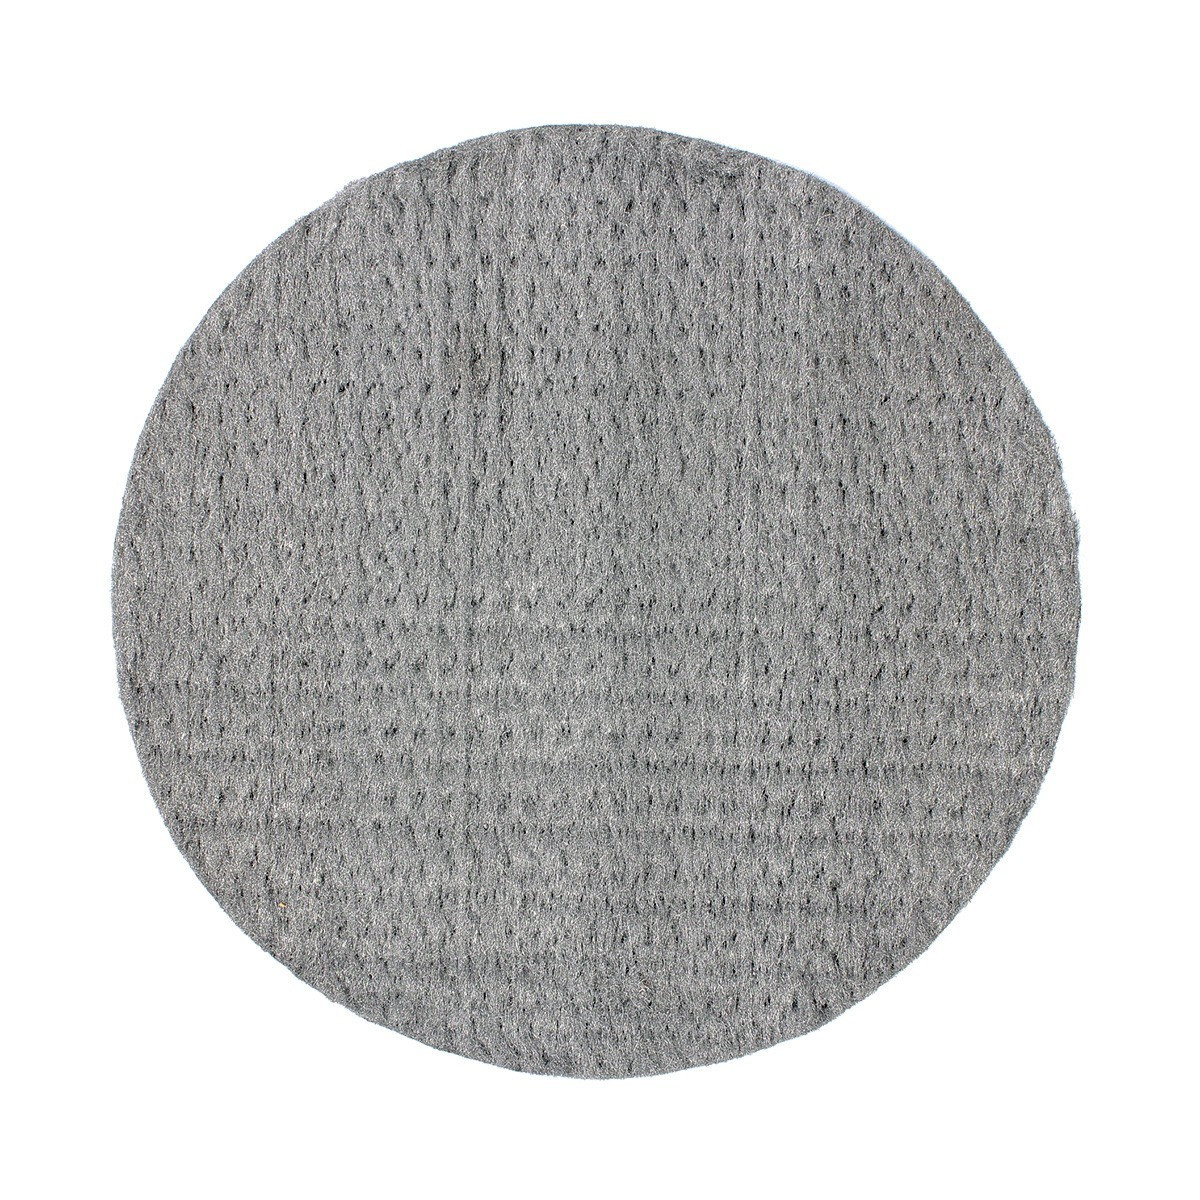 "0000 Stainless Steel Wool Pads: 20"" Texsteel Pressed Steel Wool Floor Pads (Case Of 12"